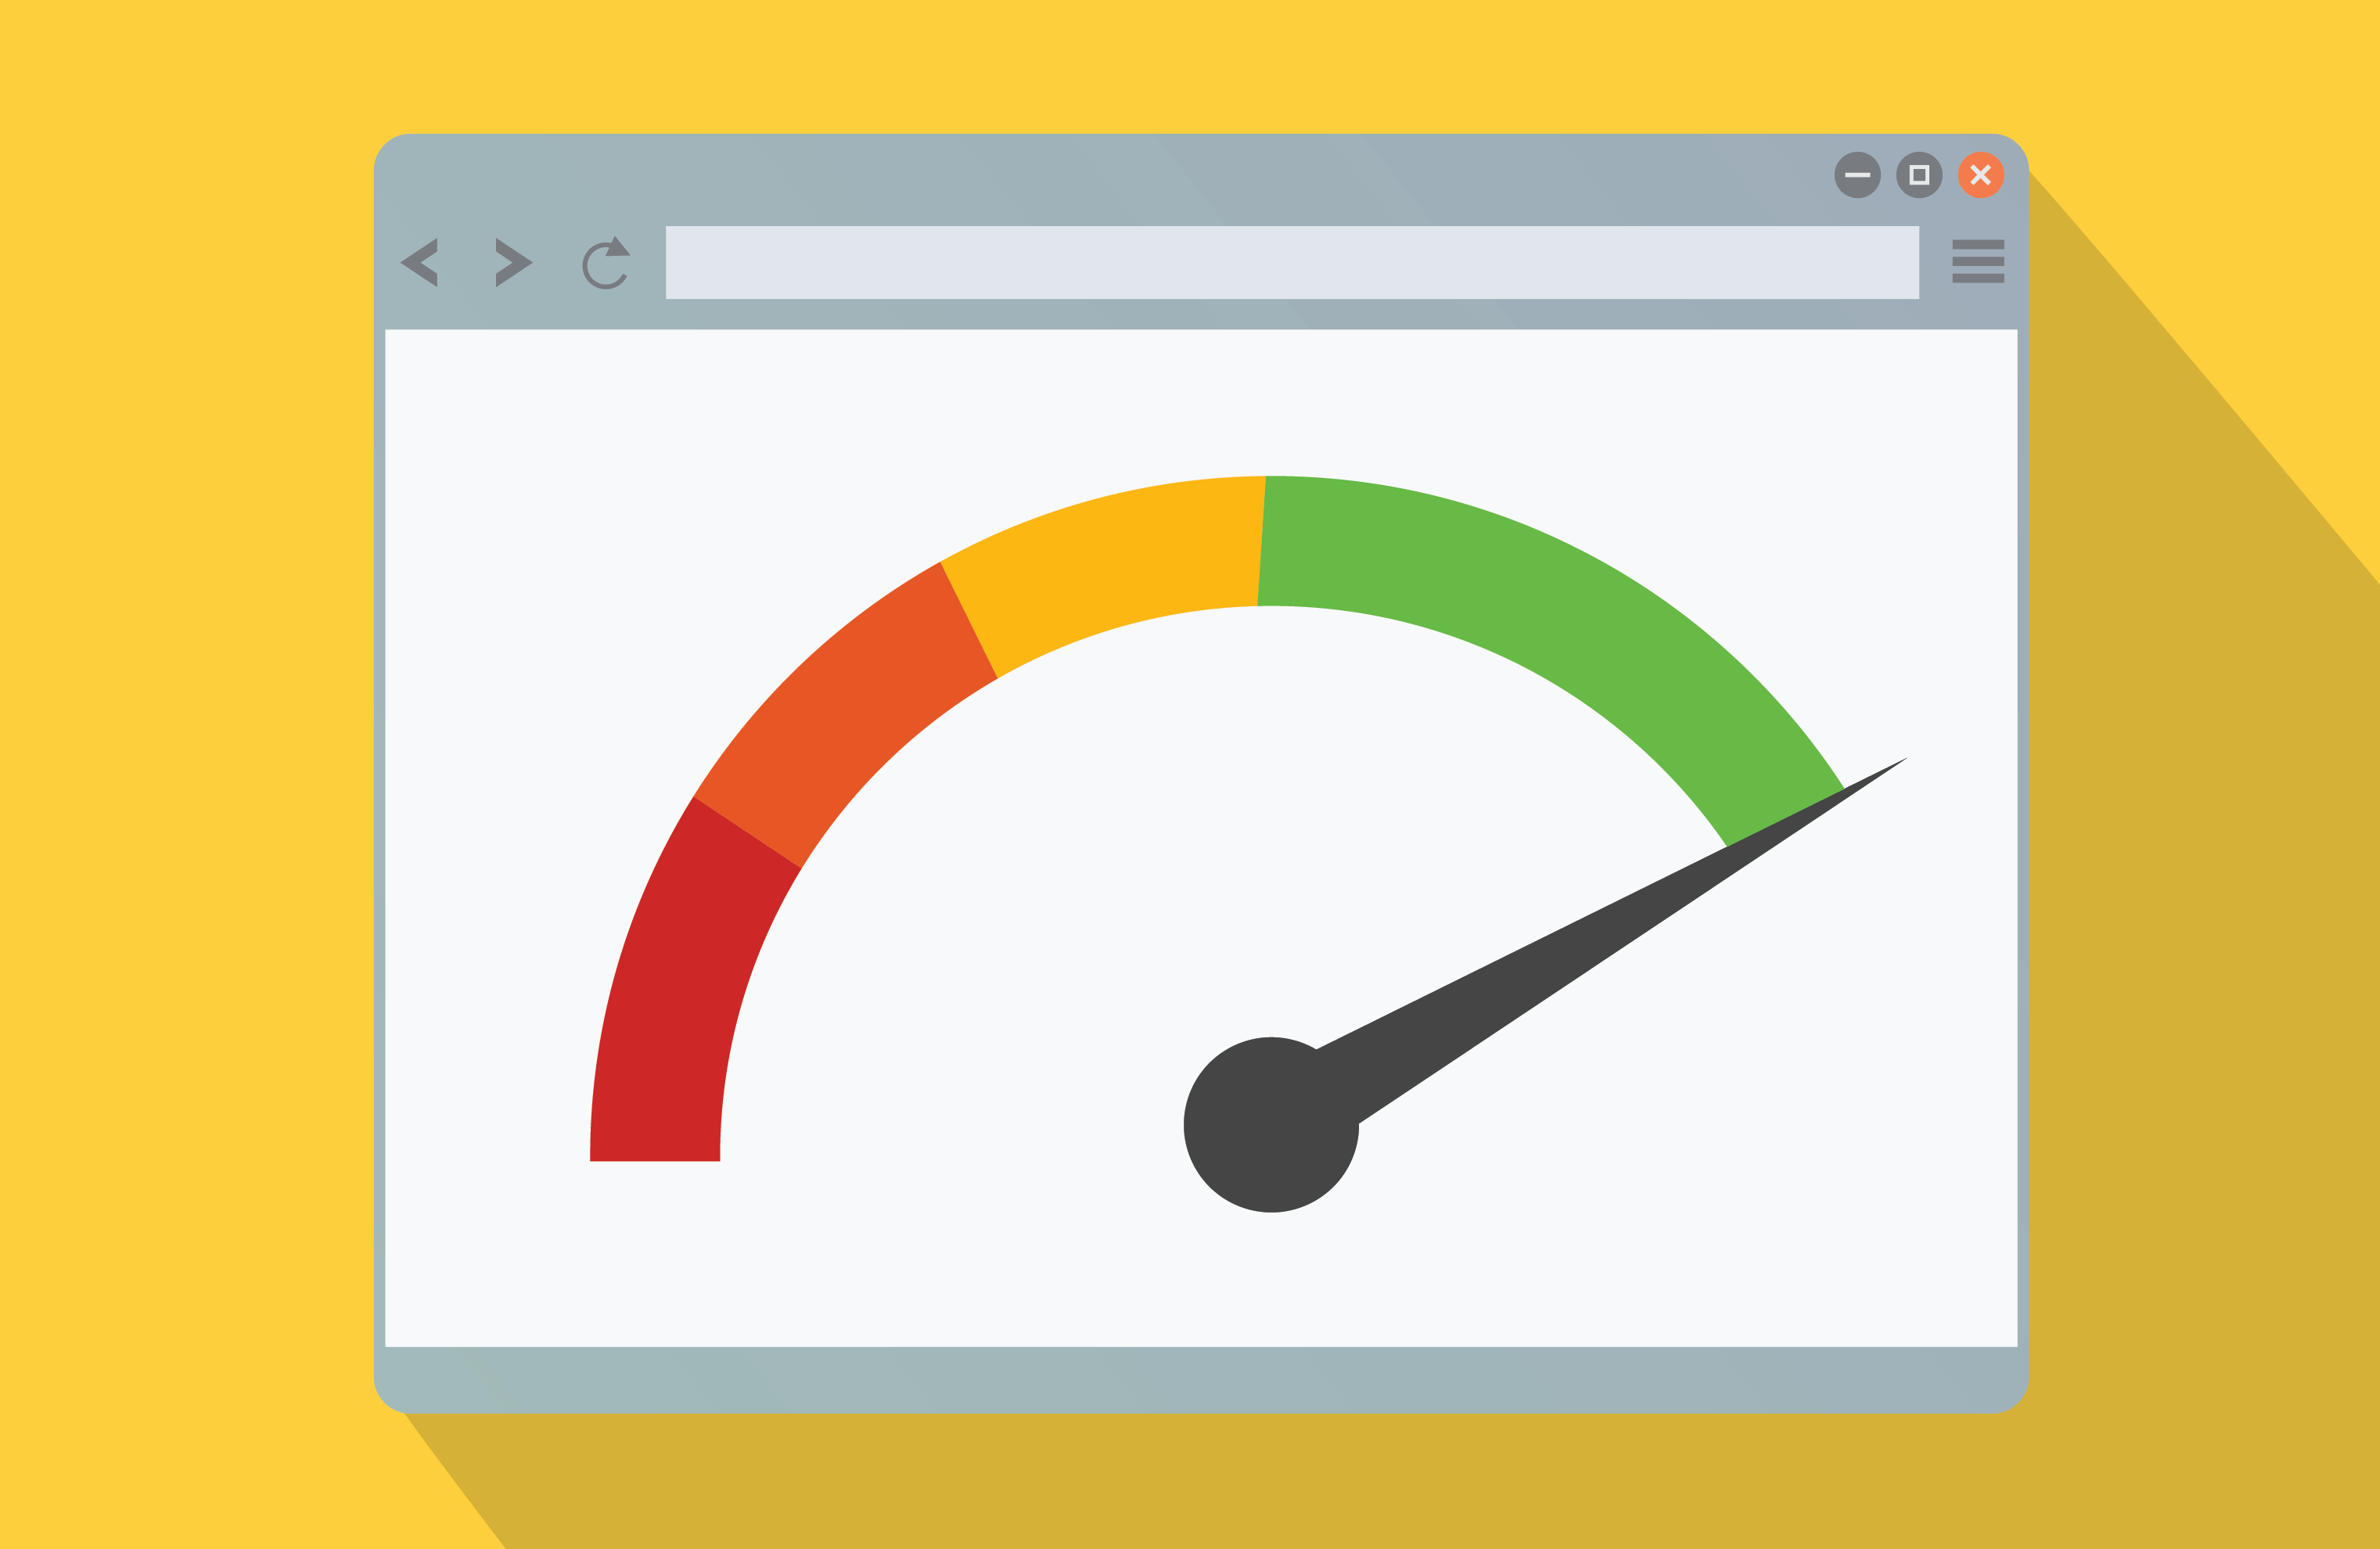 Software Performance Testing Metrics: What Are Metrics and How to Use Them?